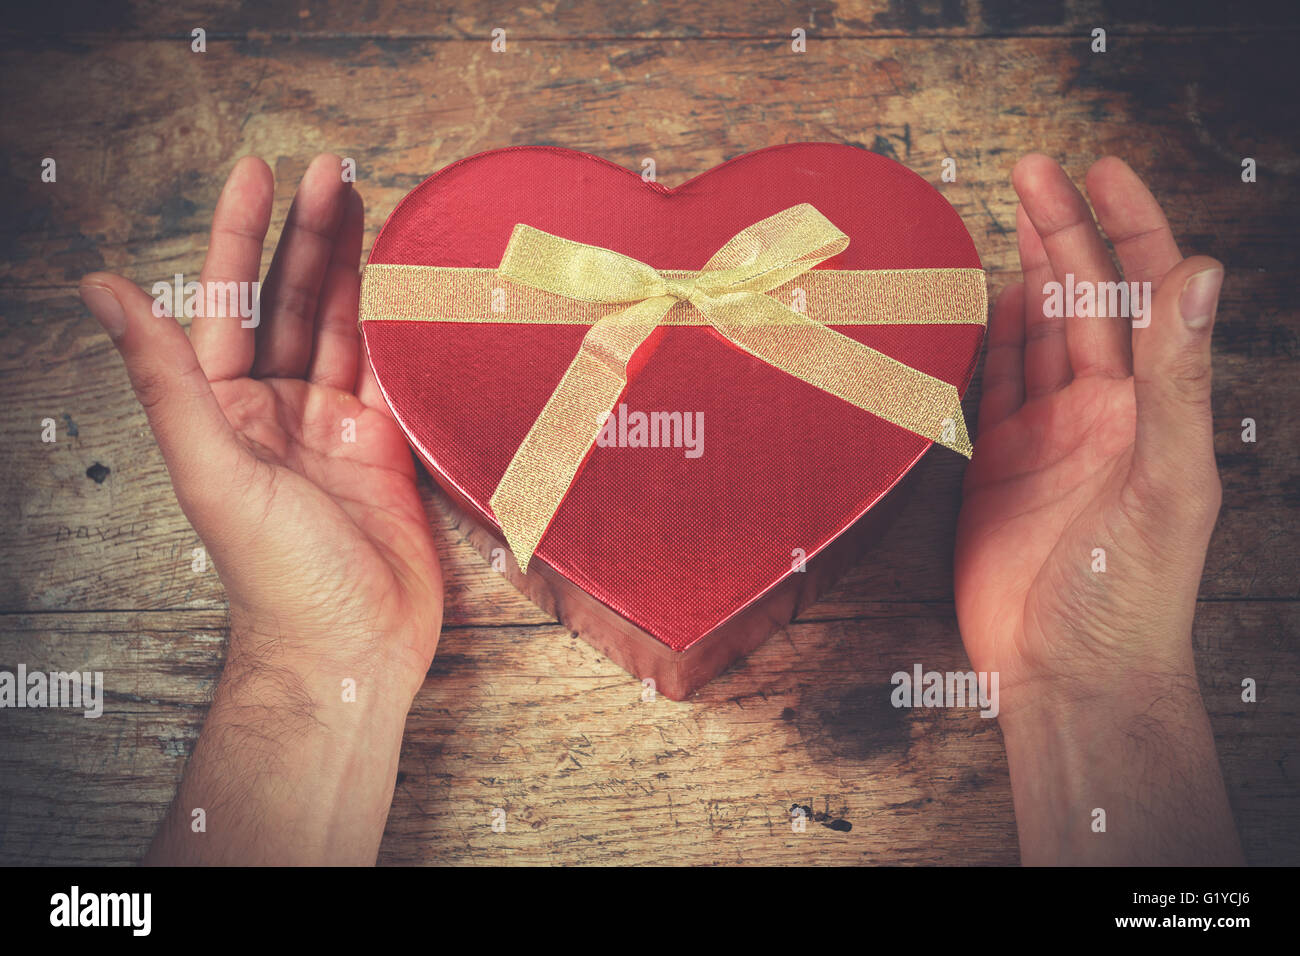 A man's hands are resting on a wooden surface with a heart shaped box - Stock Image